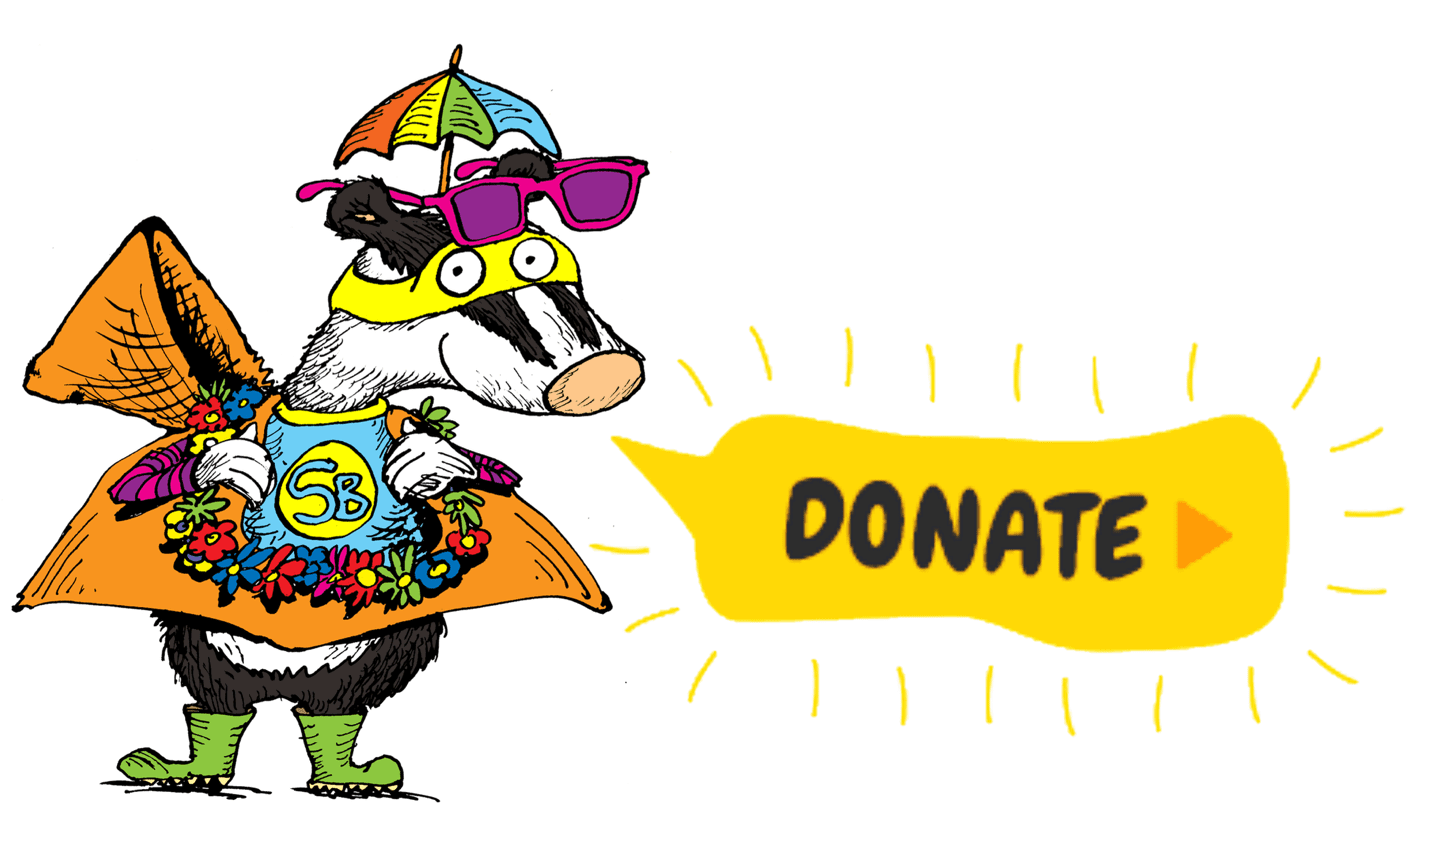 party donate